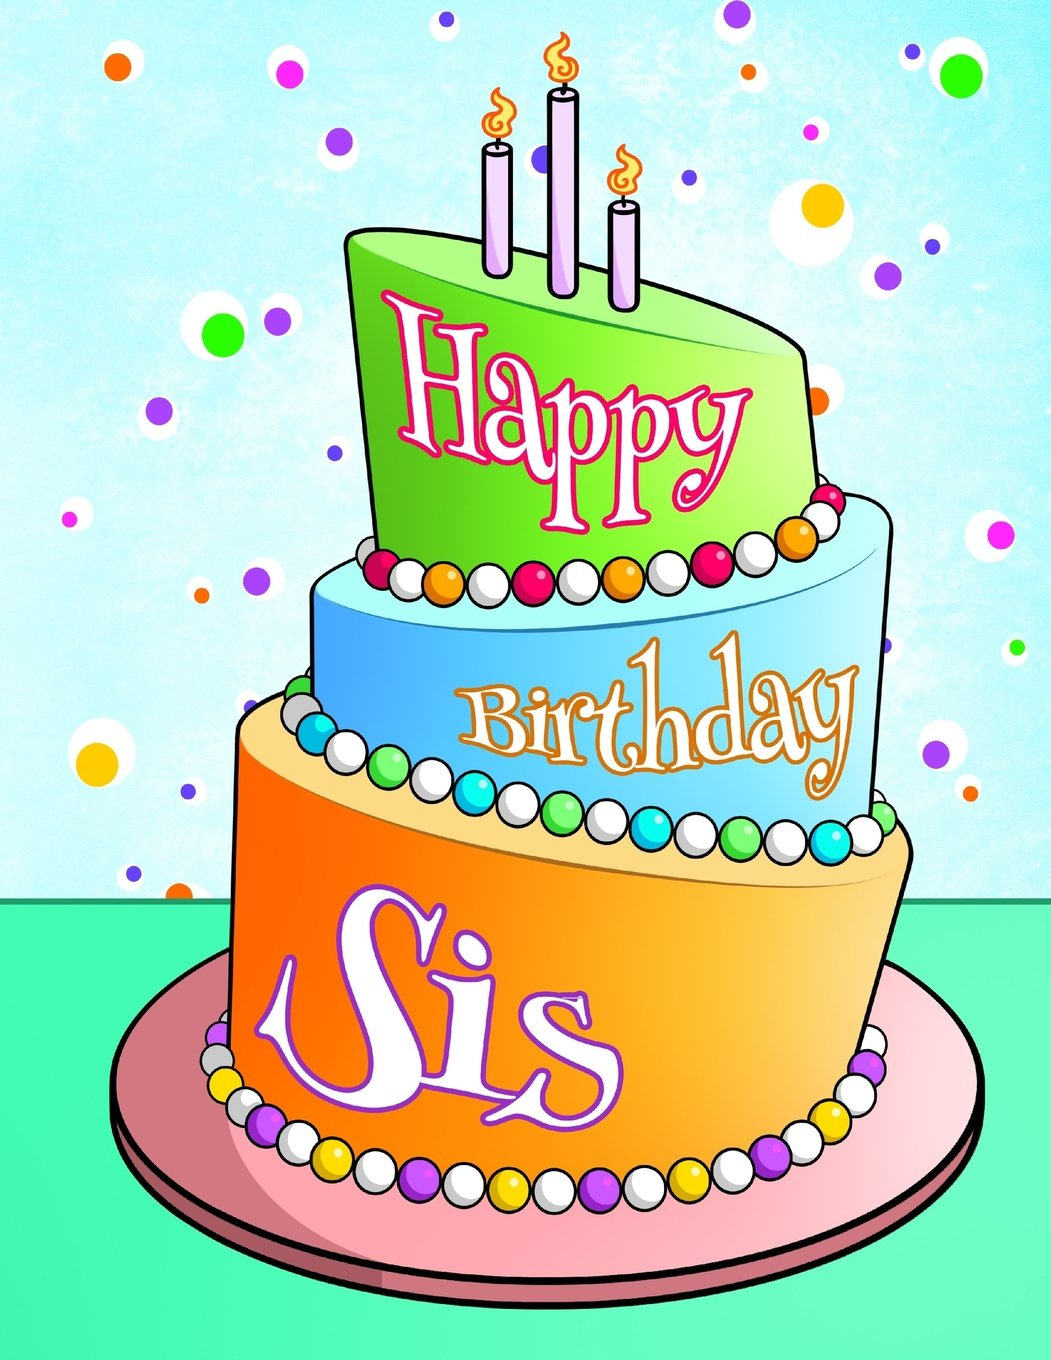 Happy Birthday Sis Personalized Book Journal Notebook